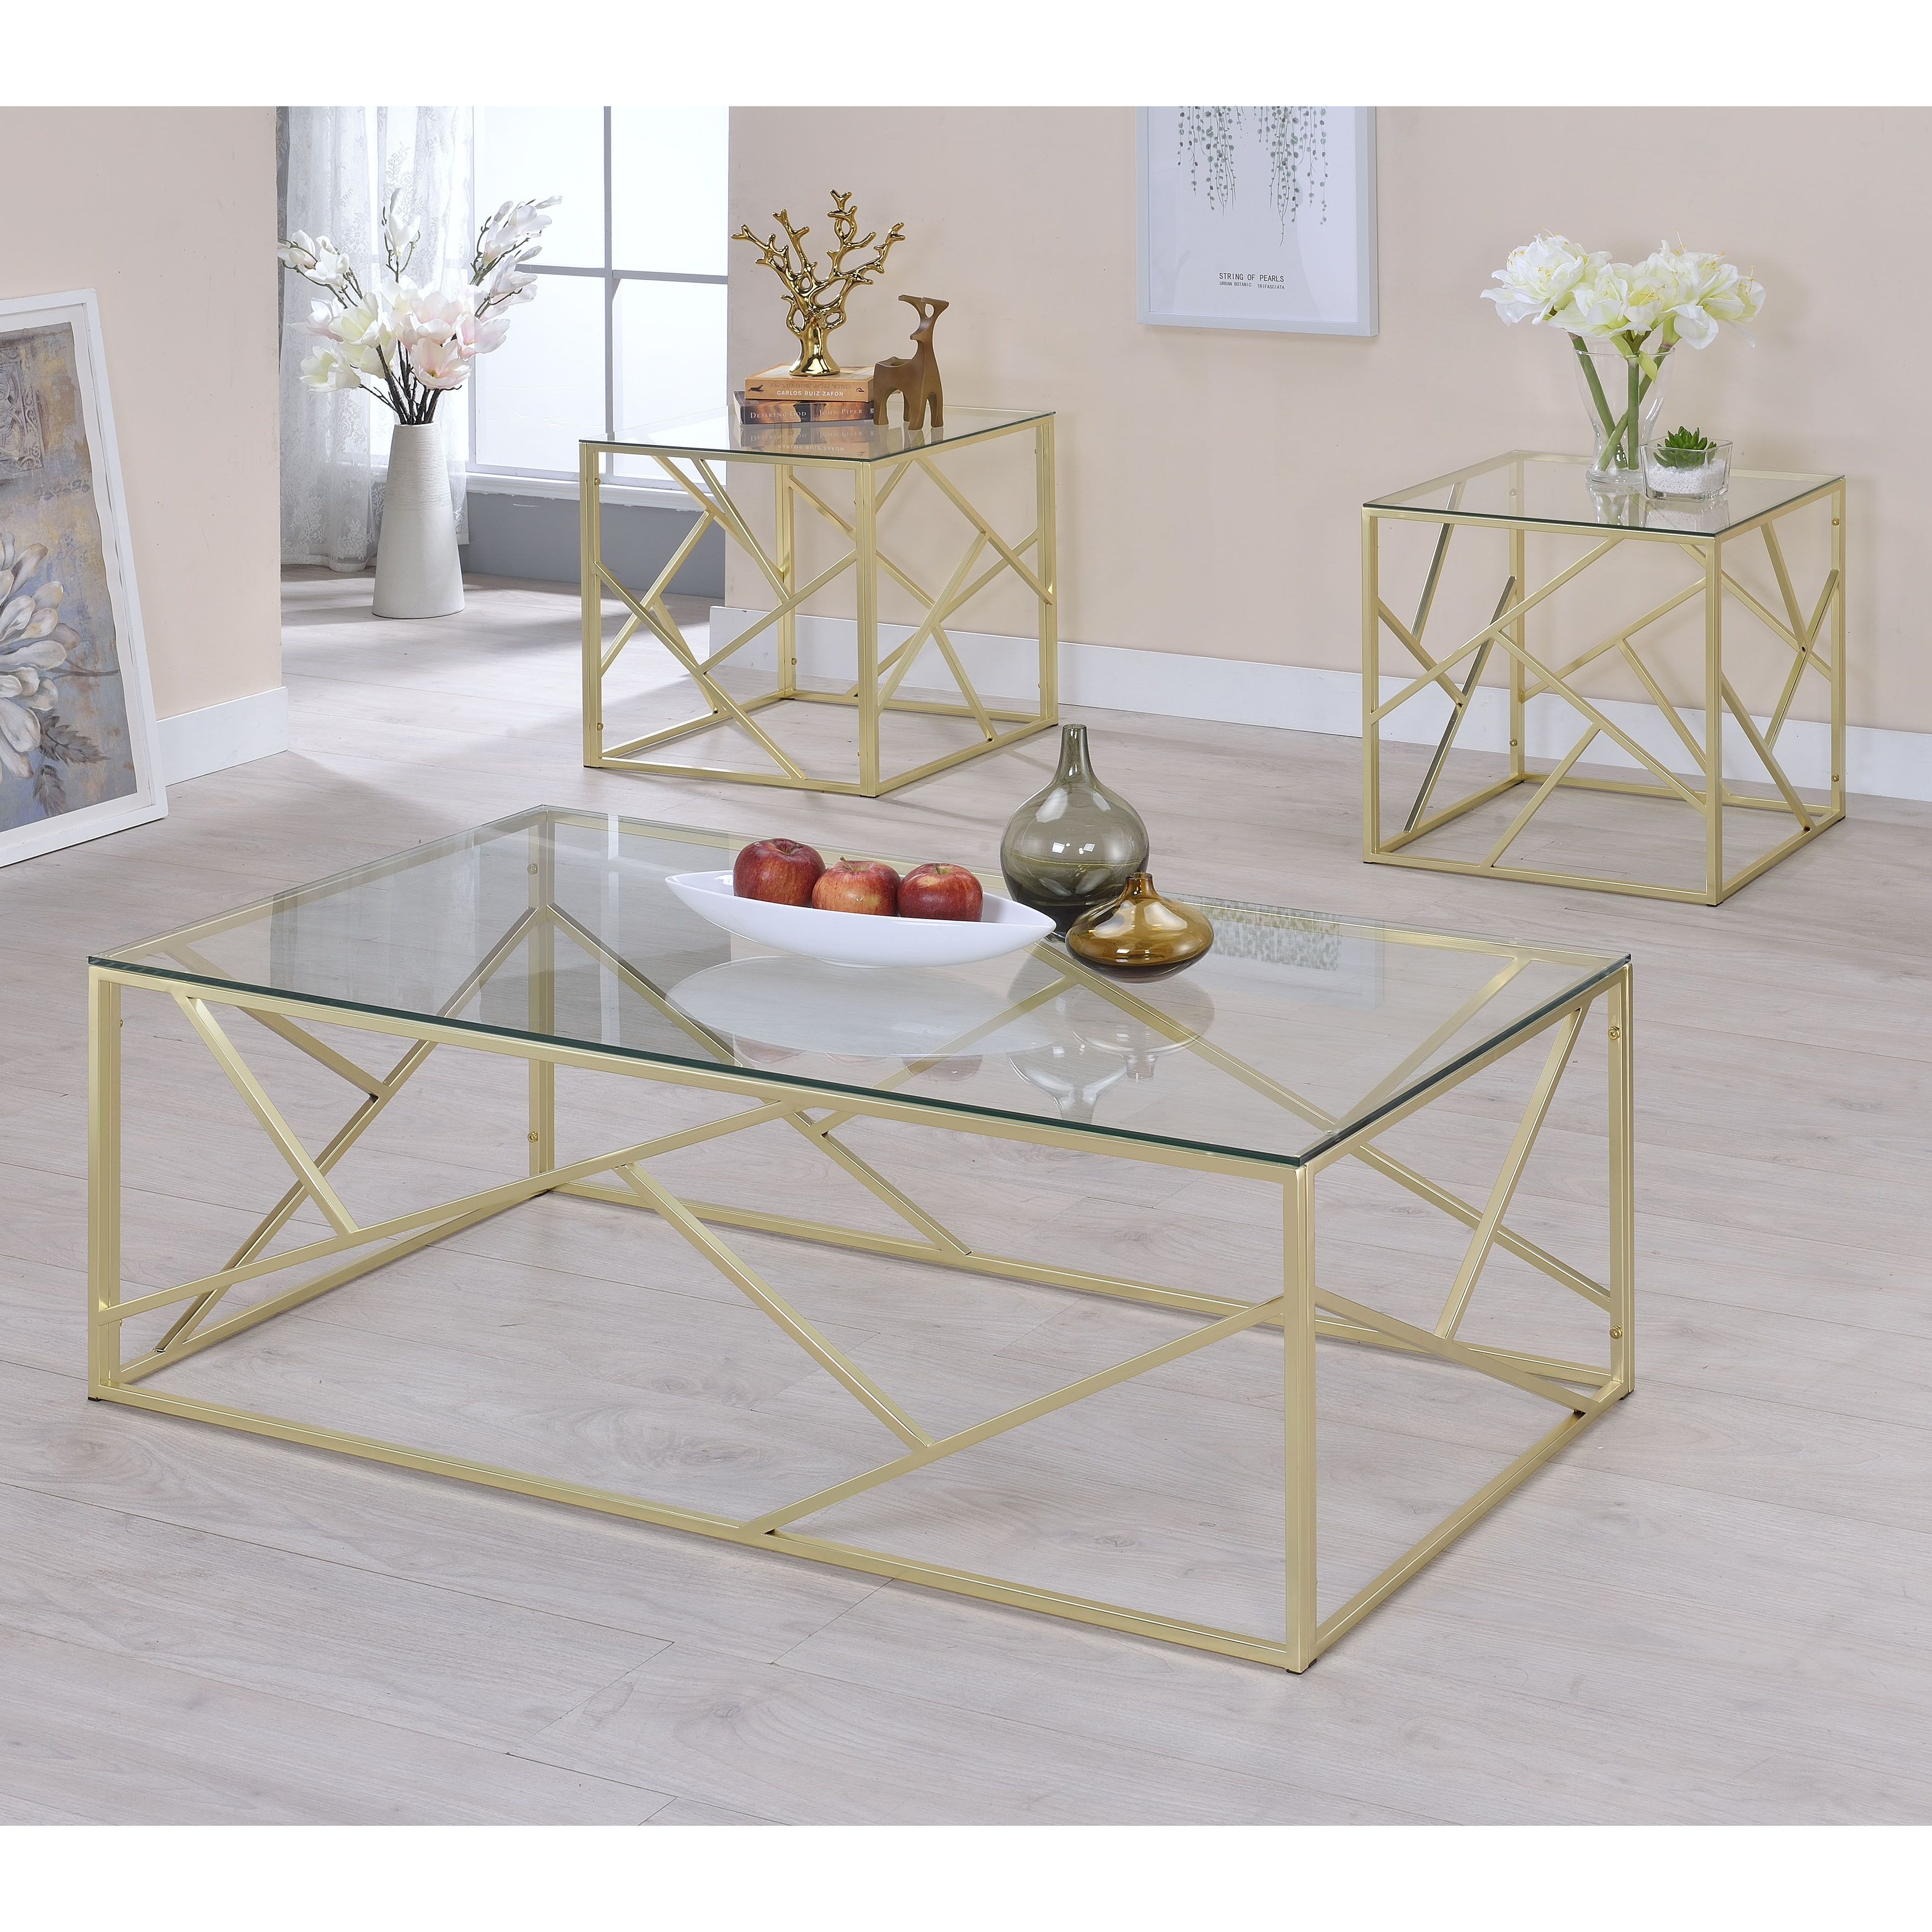 Modern glass end table  Furniture of America Enderin Contemporary MetalTempered Glass